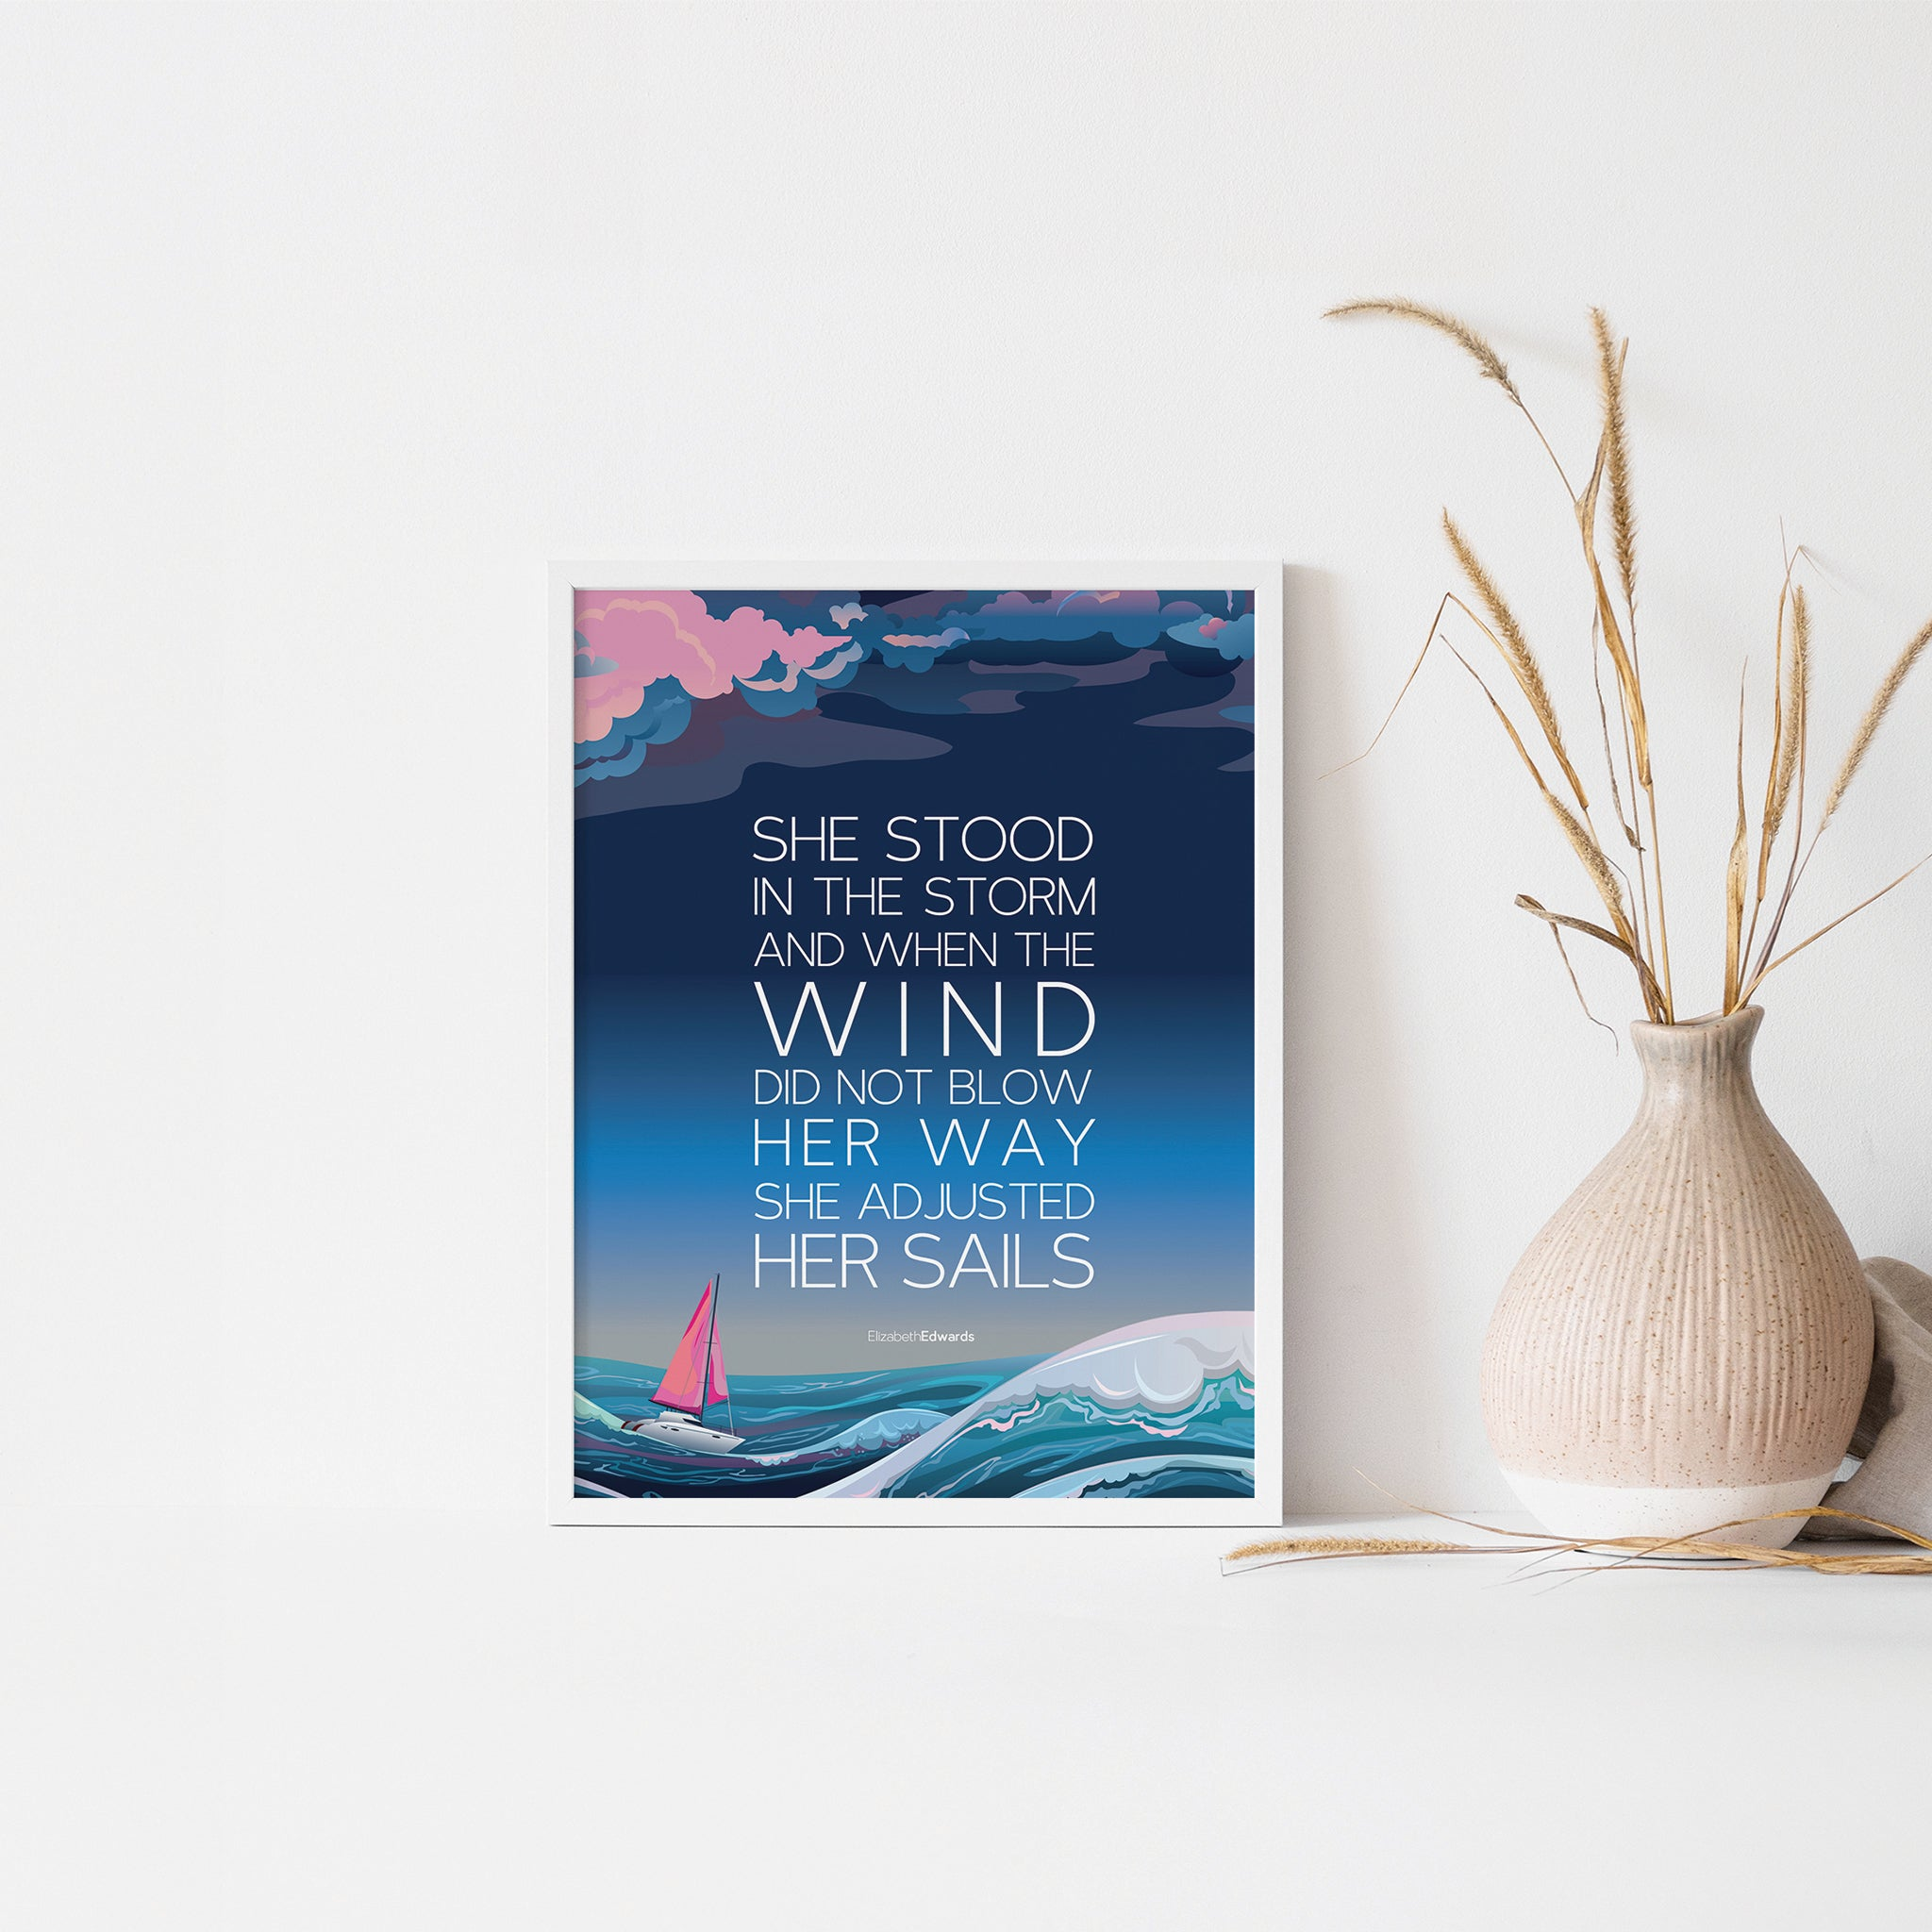 She stood in the storm and when the wind did not blow her away, she adjusted her sails, Quote art poster for your home and office